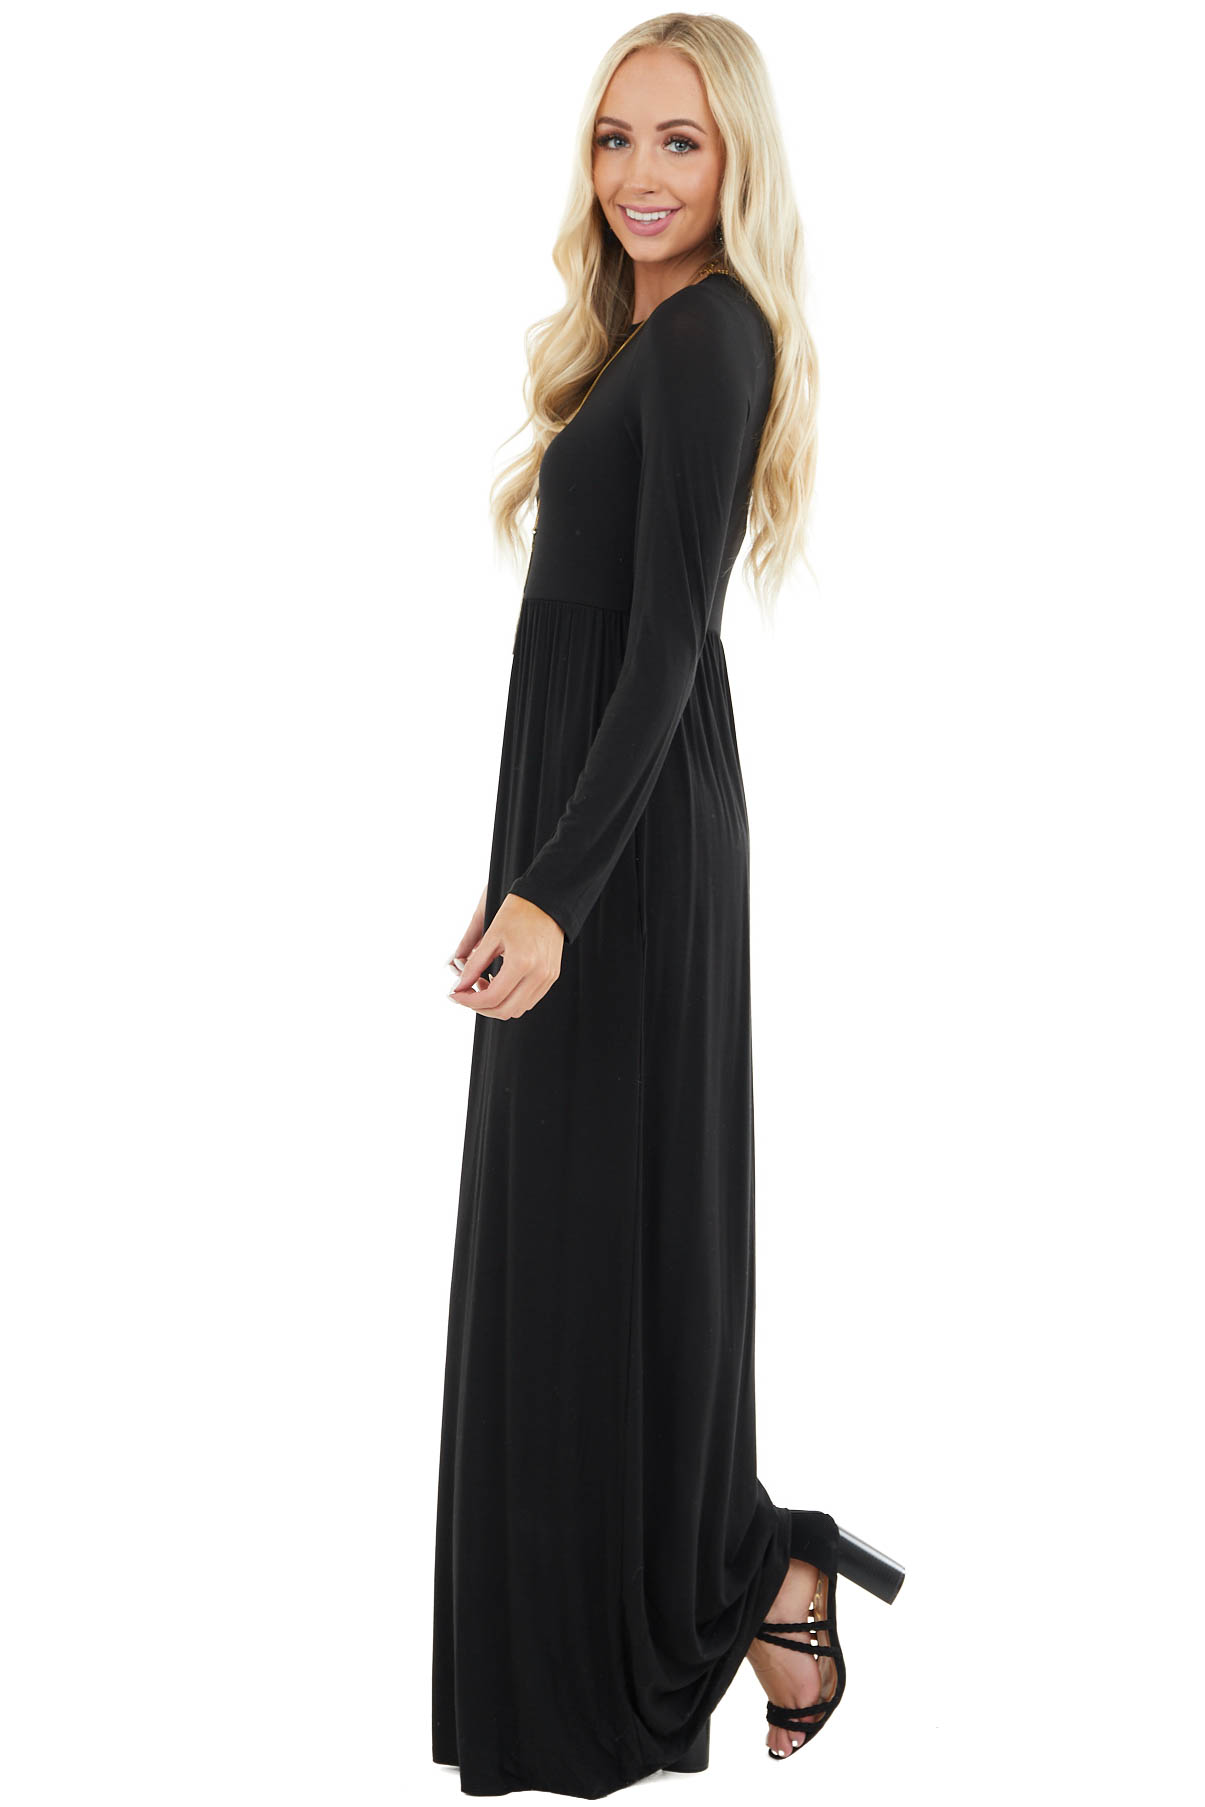 Black Long Sleeve Knit Maxi Dress with Pockets